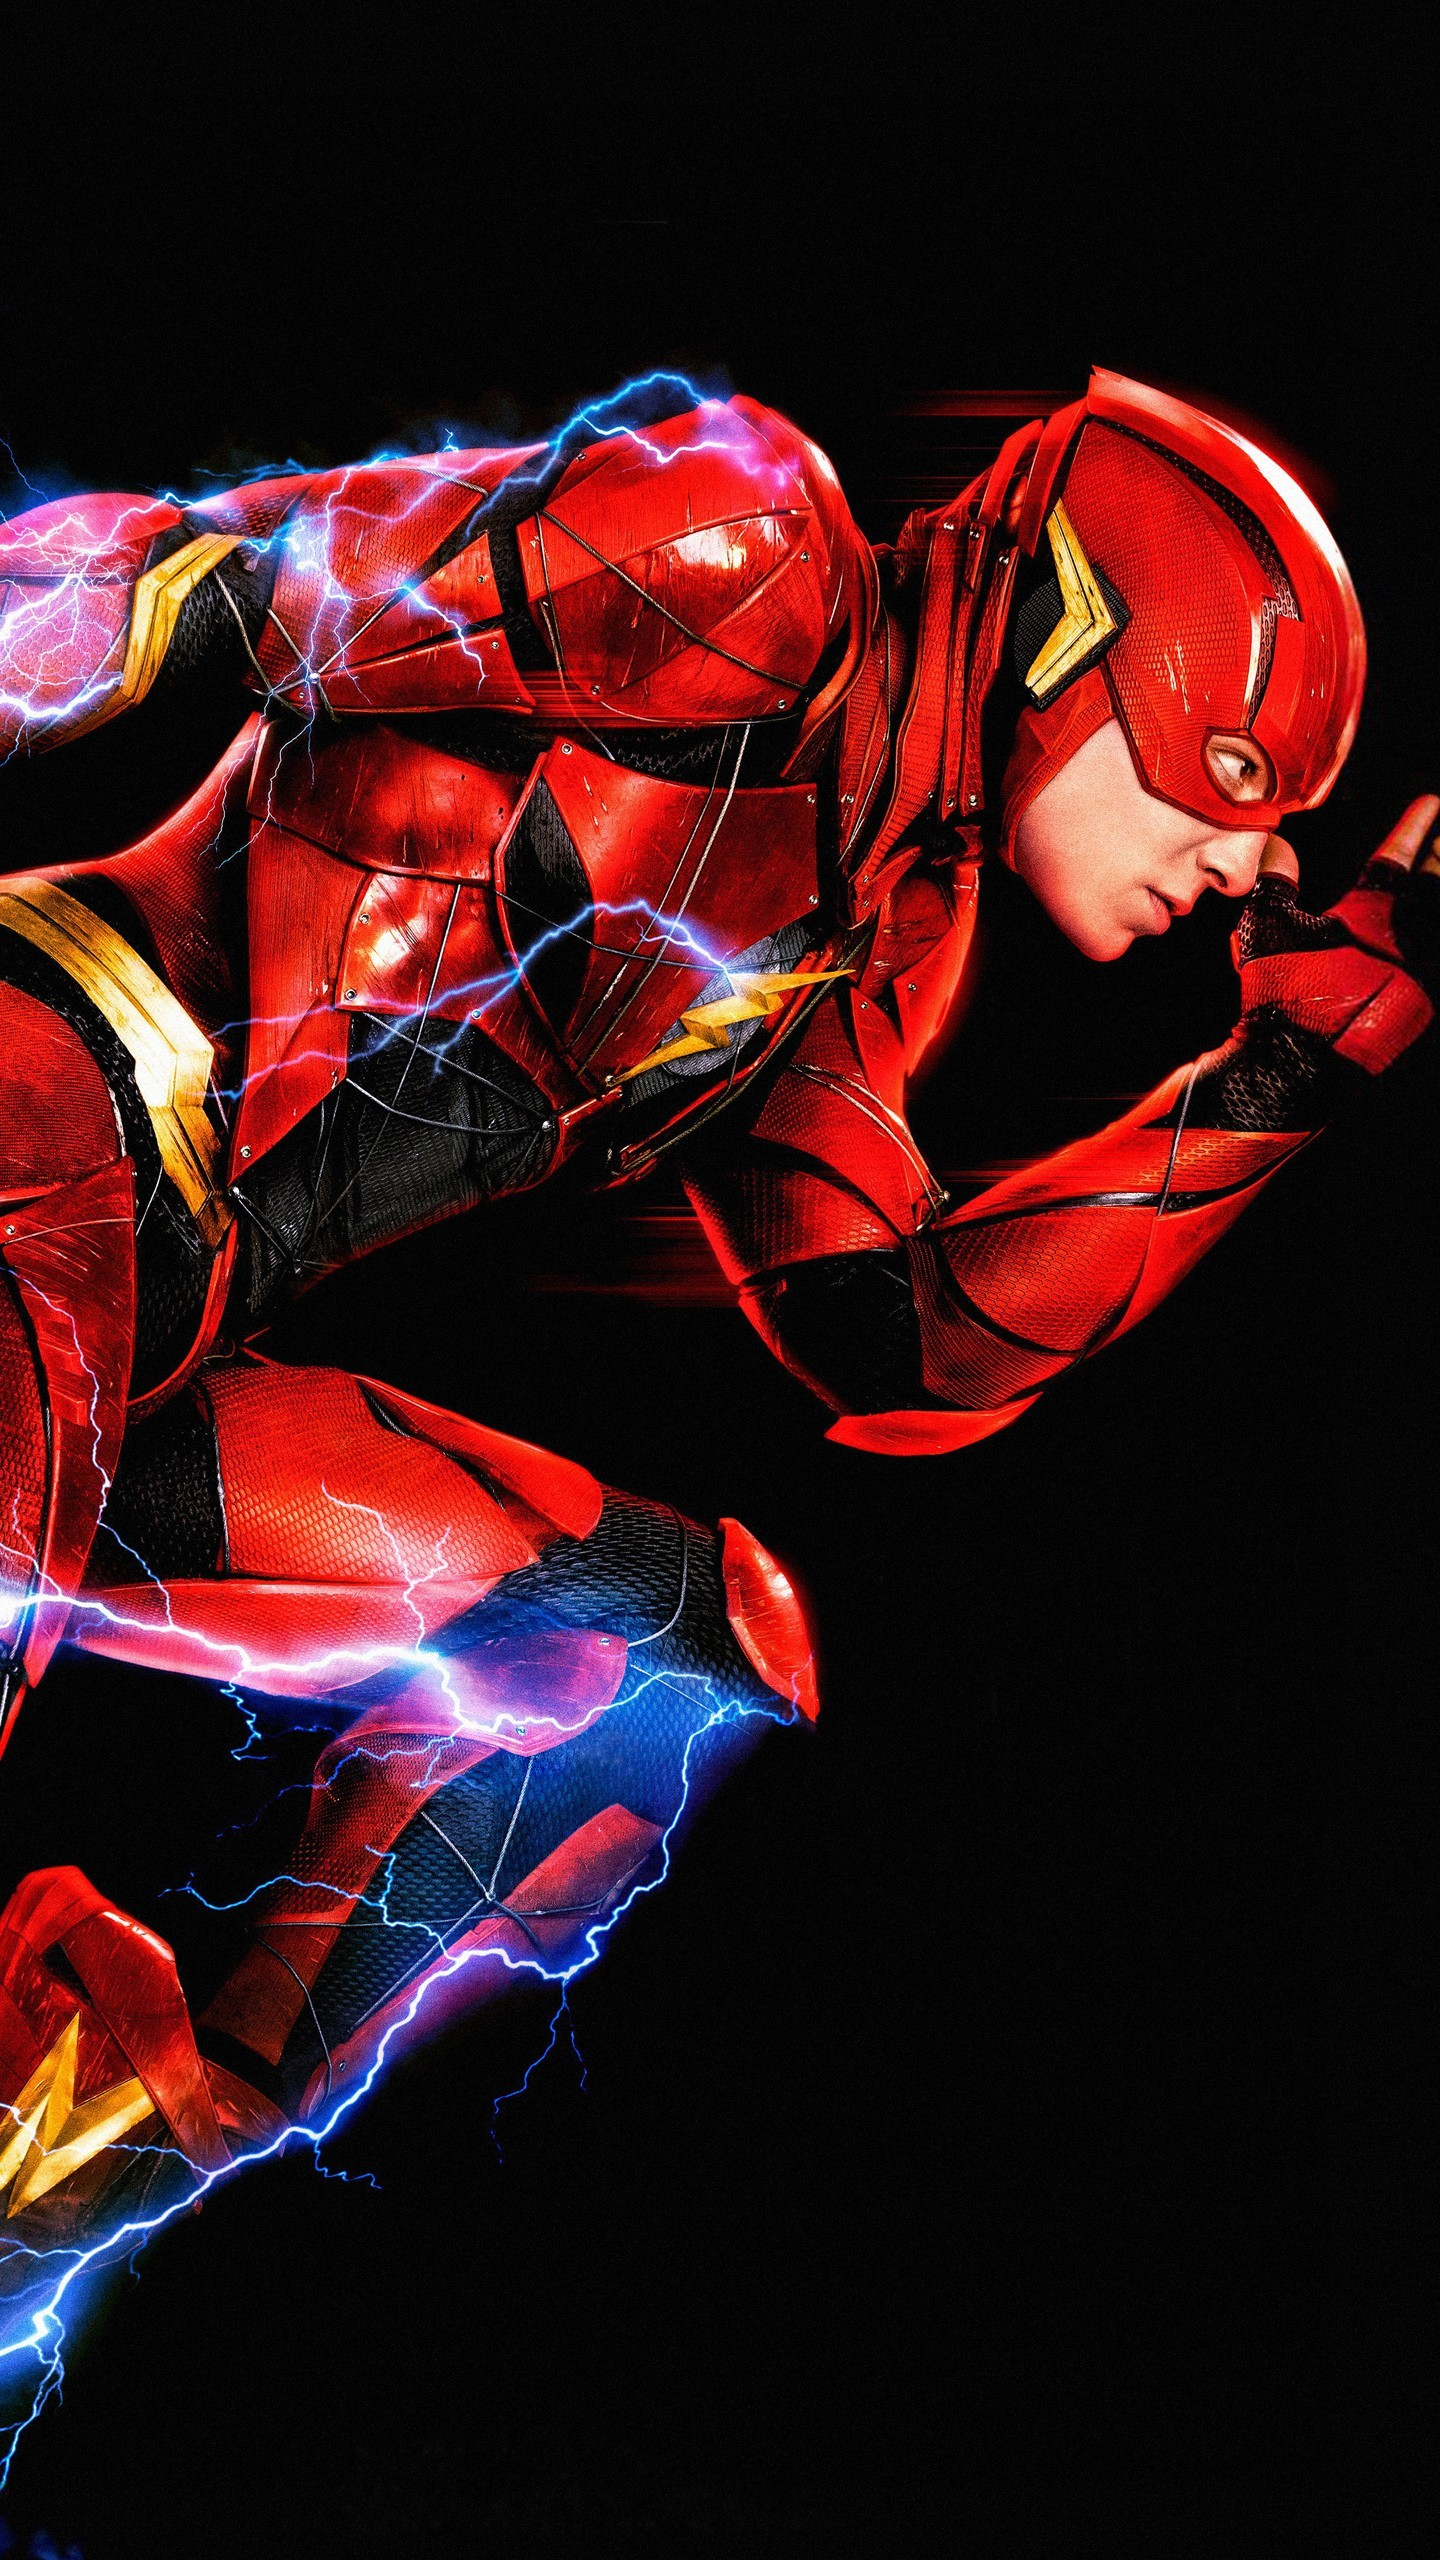 flash backgrounds, the flash wallpaper for android